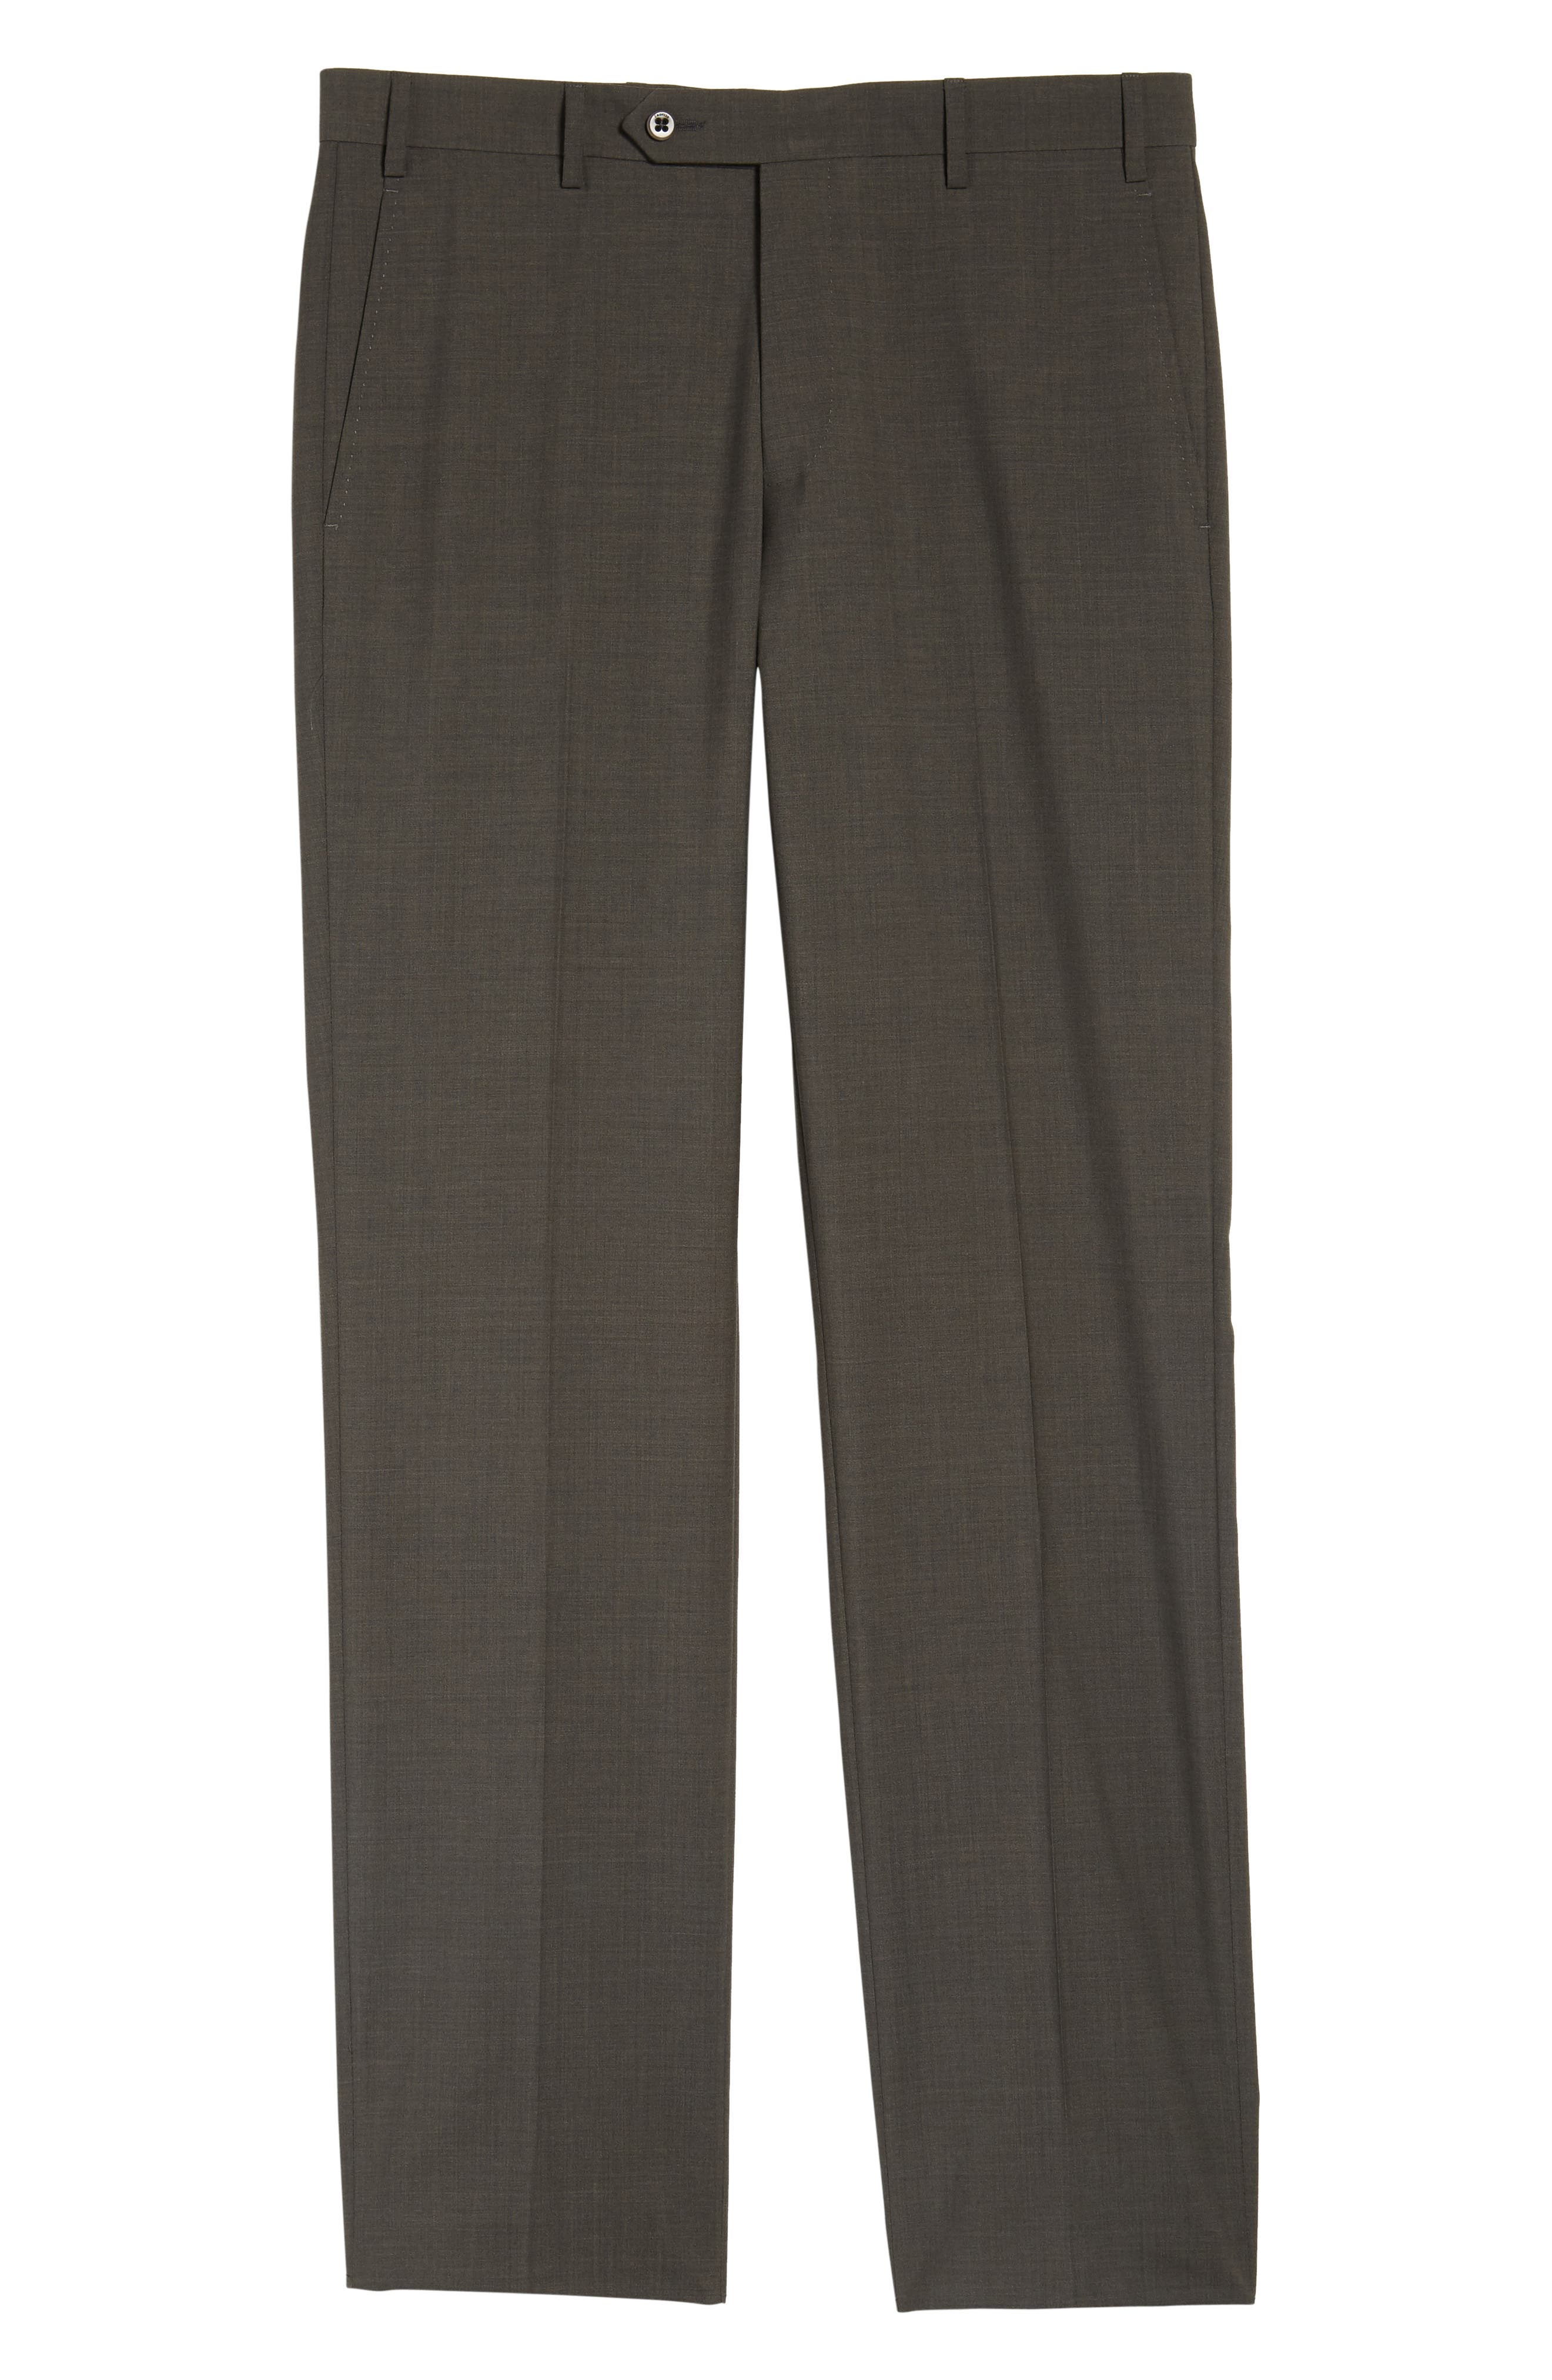 Devon Flat Front Solid Wool Trousers,                             Alternate thumbnail 6, color,                             Olive